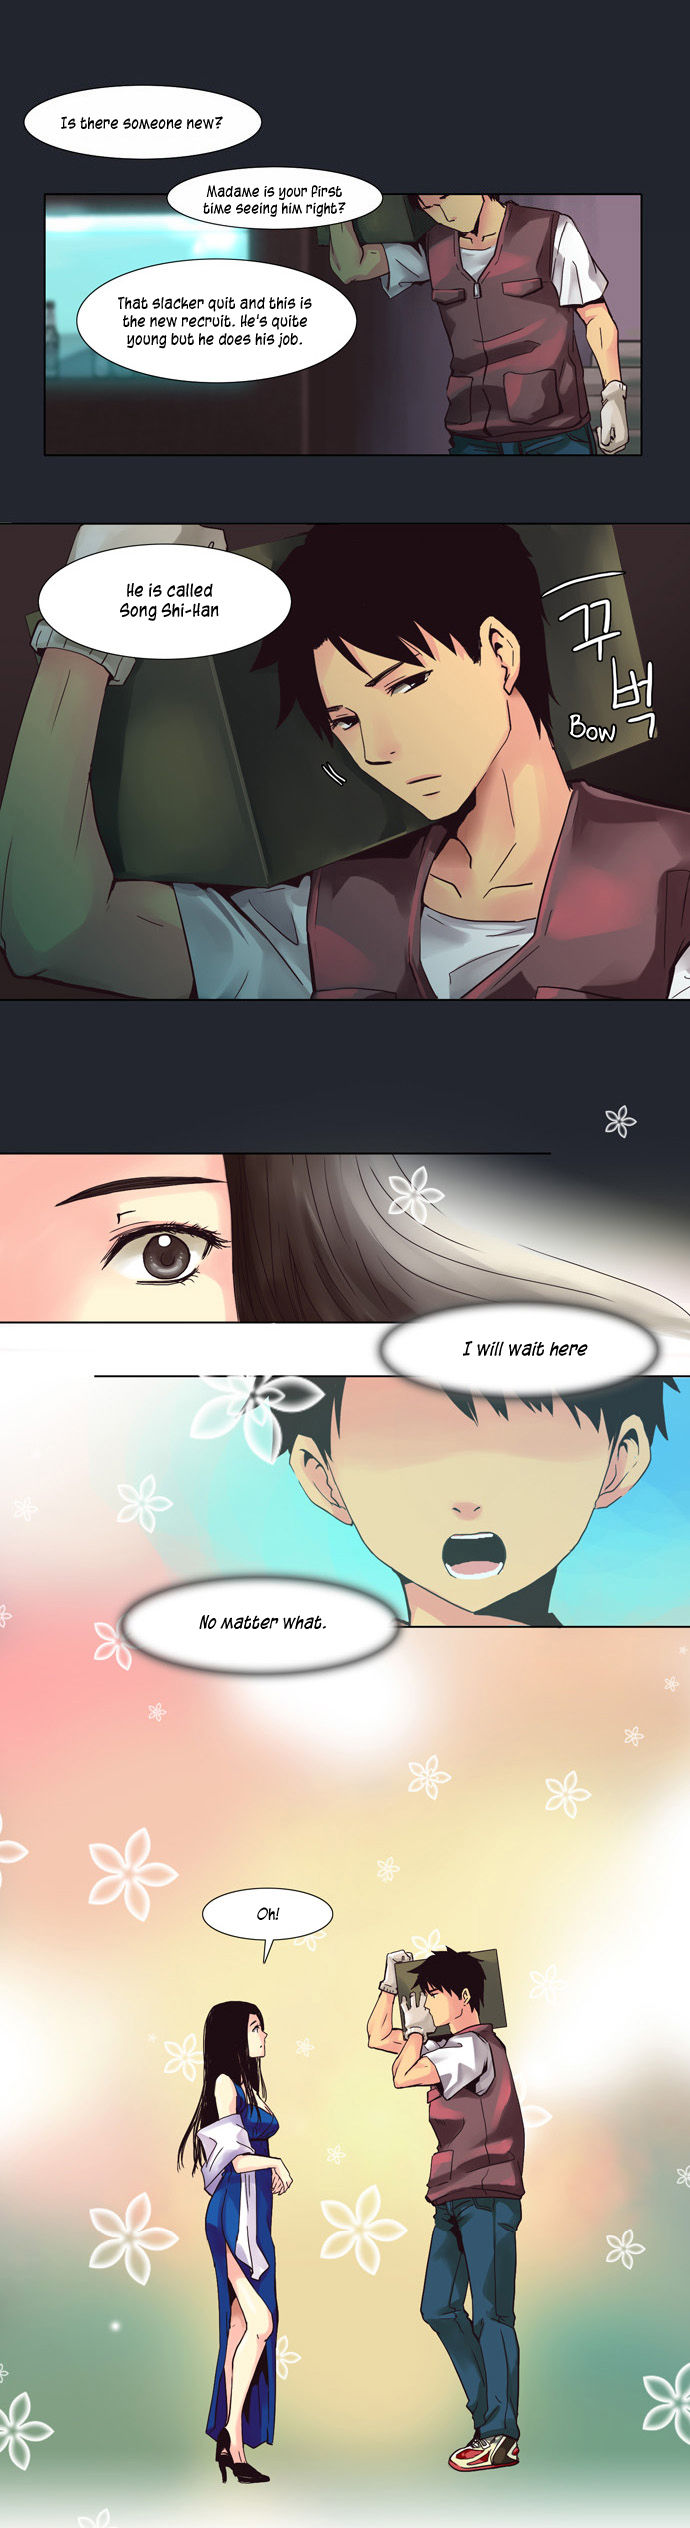 Dear, Only You Don't Know! 4 Page 3